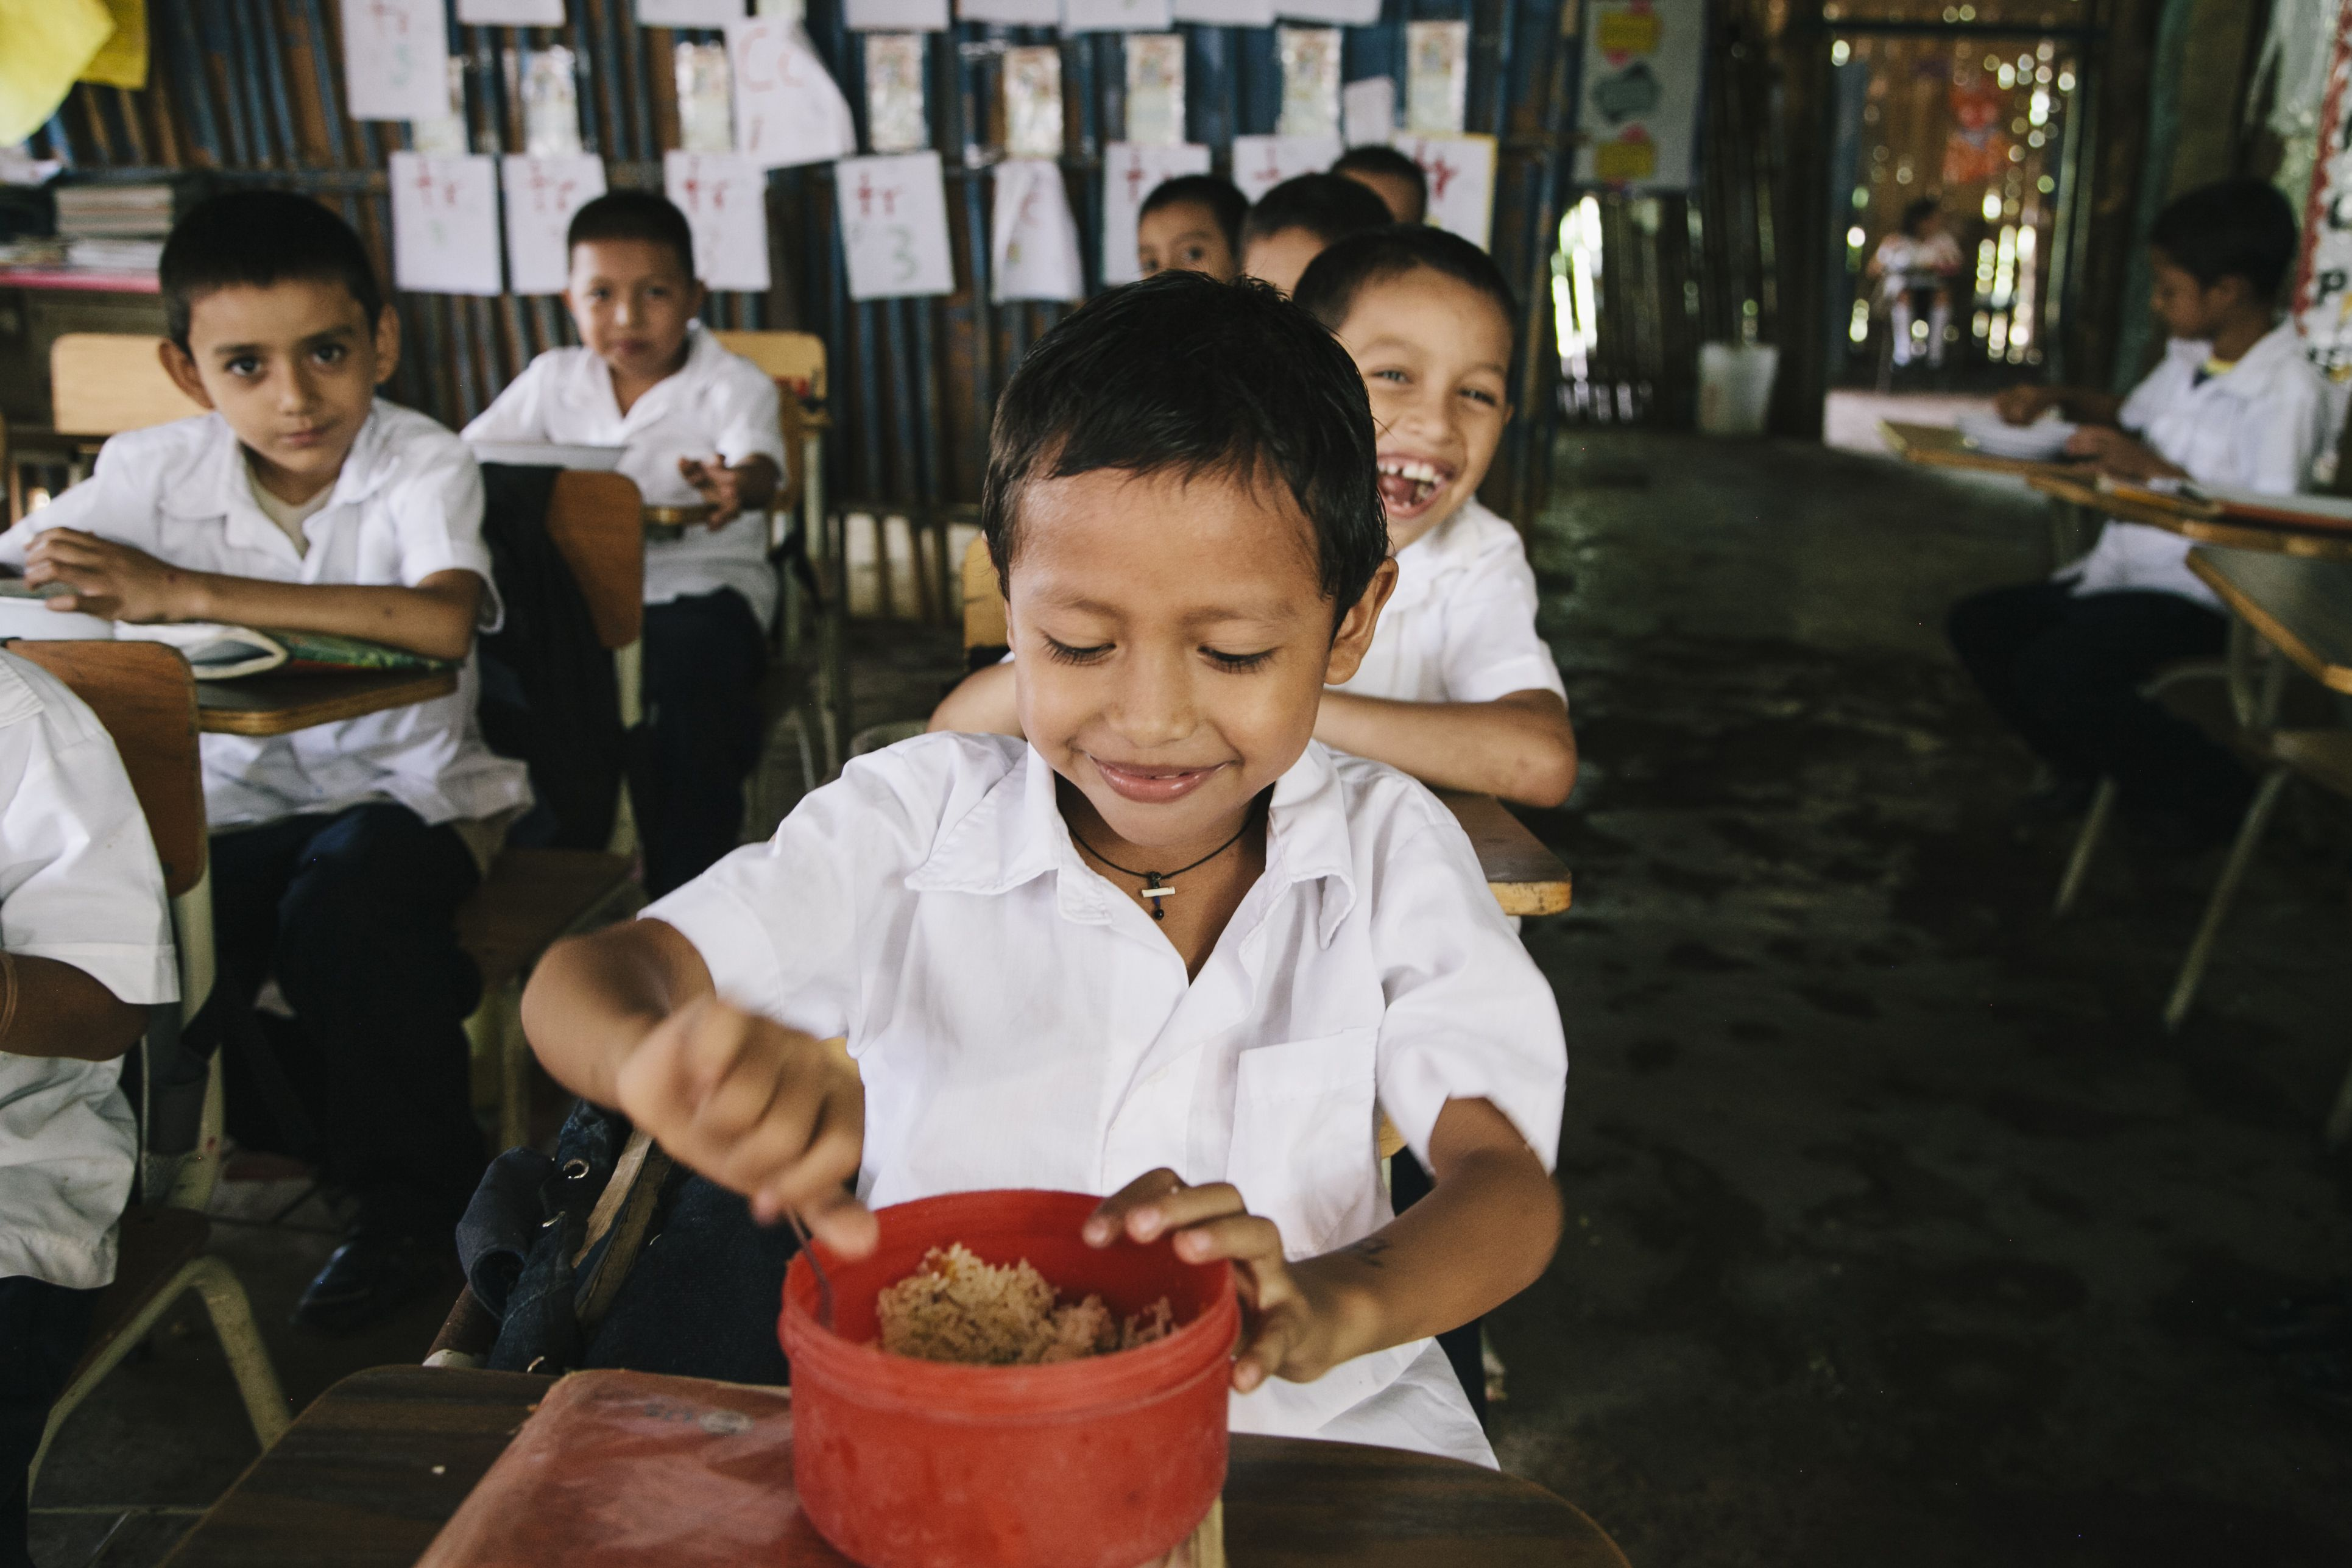 We feed children, respond to disasters, empower women, inspire communities and educate farmers because people matter. Not just on Human Rights Day, but every day.   These boys are in our children's feeding program in El Salvador, click the image to view more photos like this one.